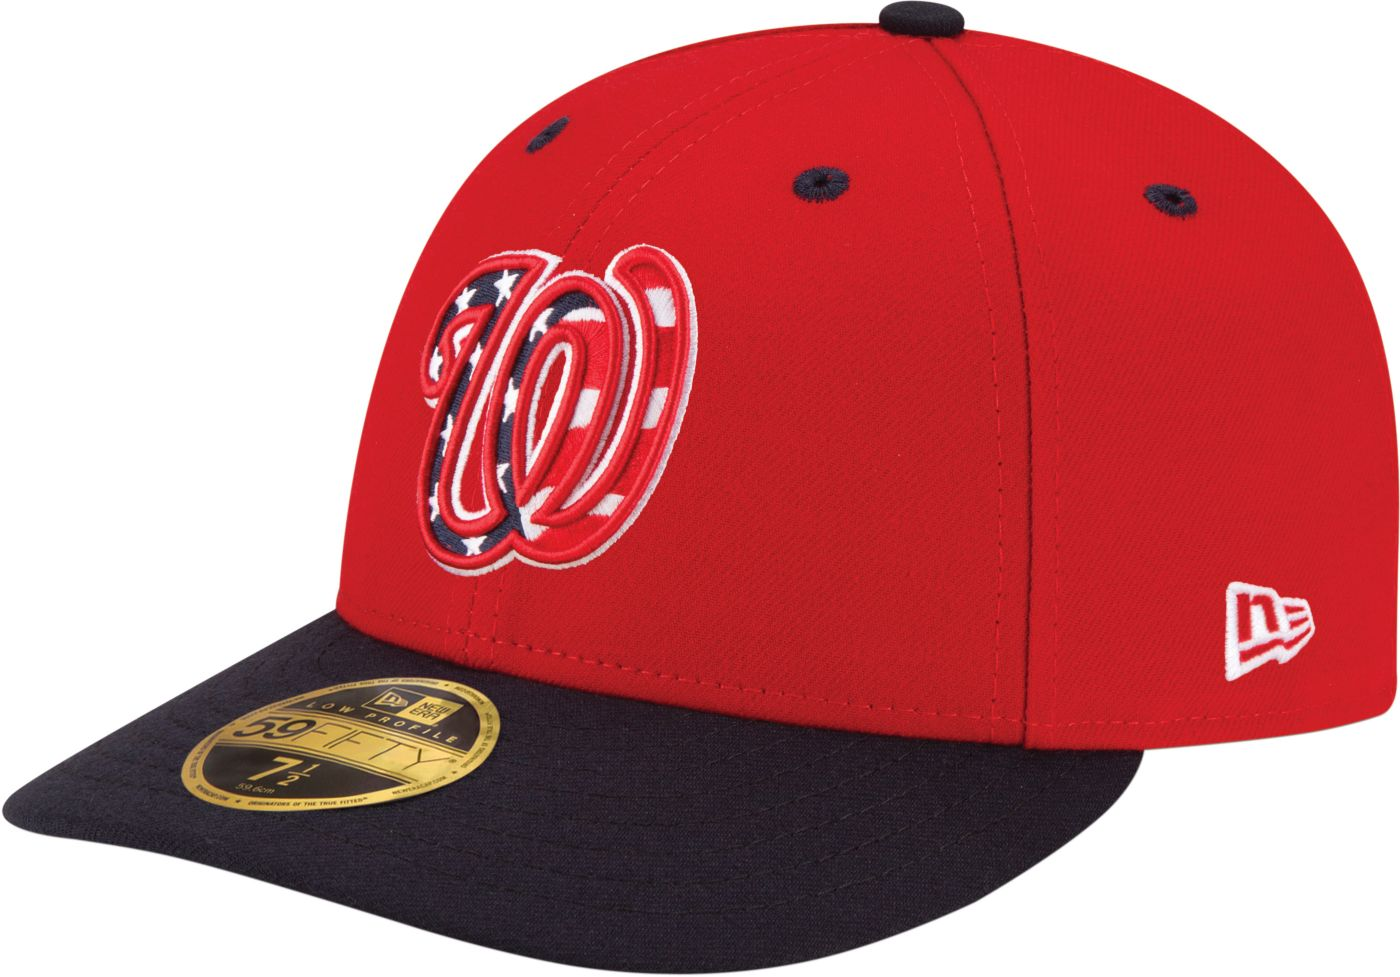 New Era Men's Washington Nationals 59Fifty Alternate Red Low Crown Fitted Hat